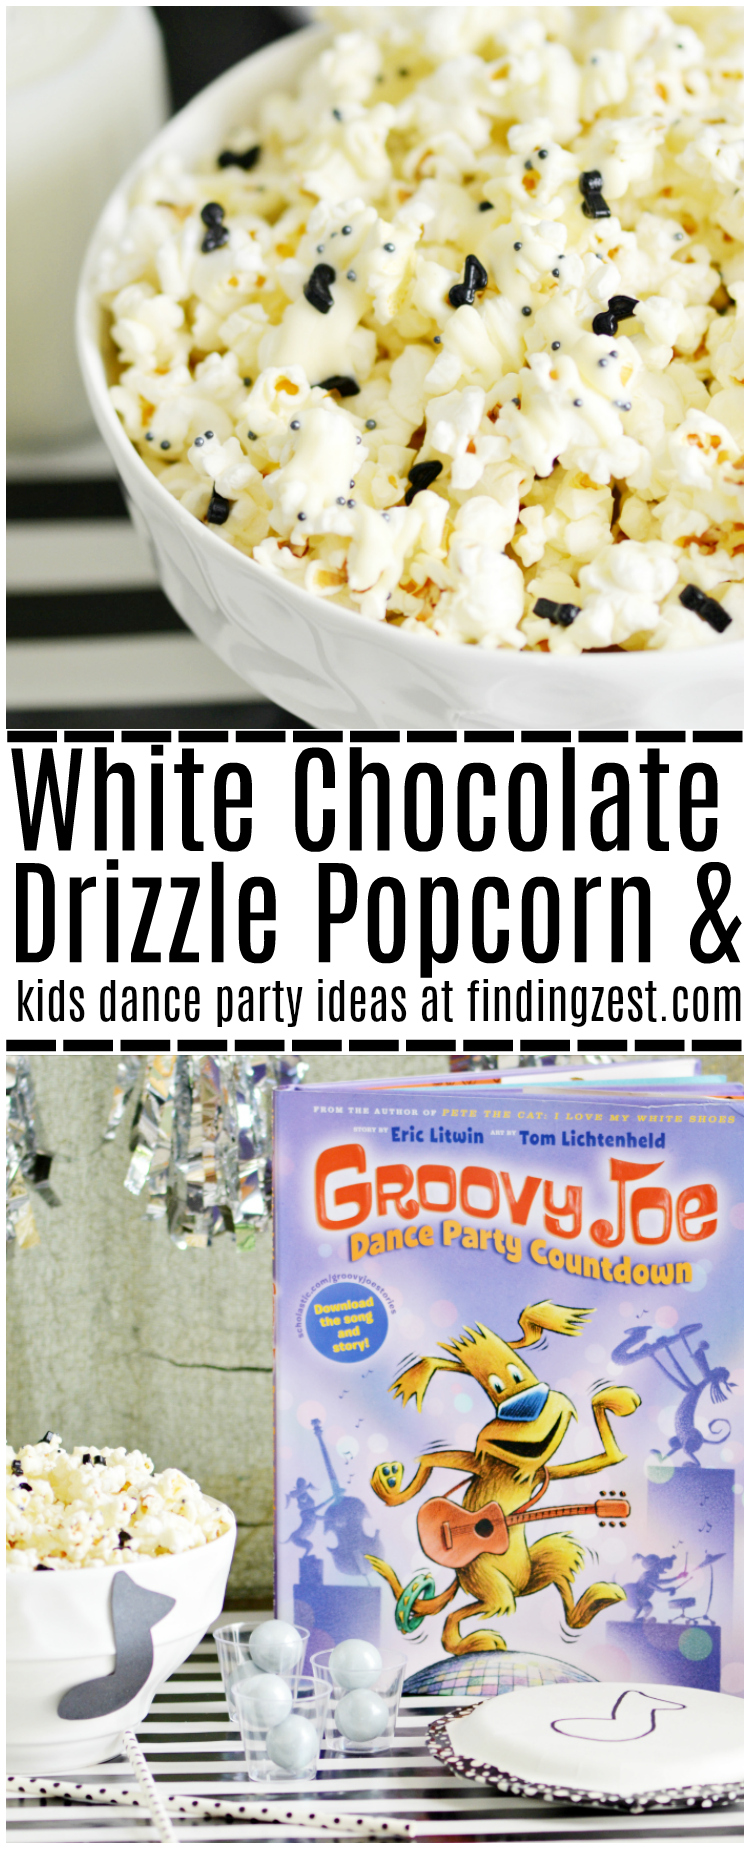 Make this easy white chocolate drizzle popcorn recipe with some homemade musical instruments for kids to host your own Groovy Joe party!